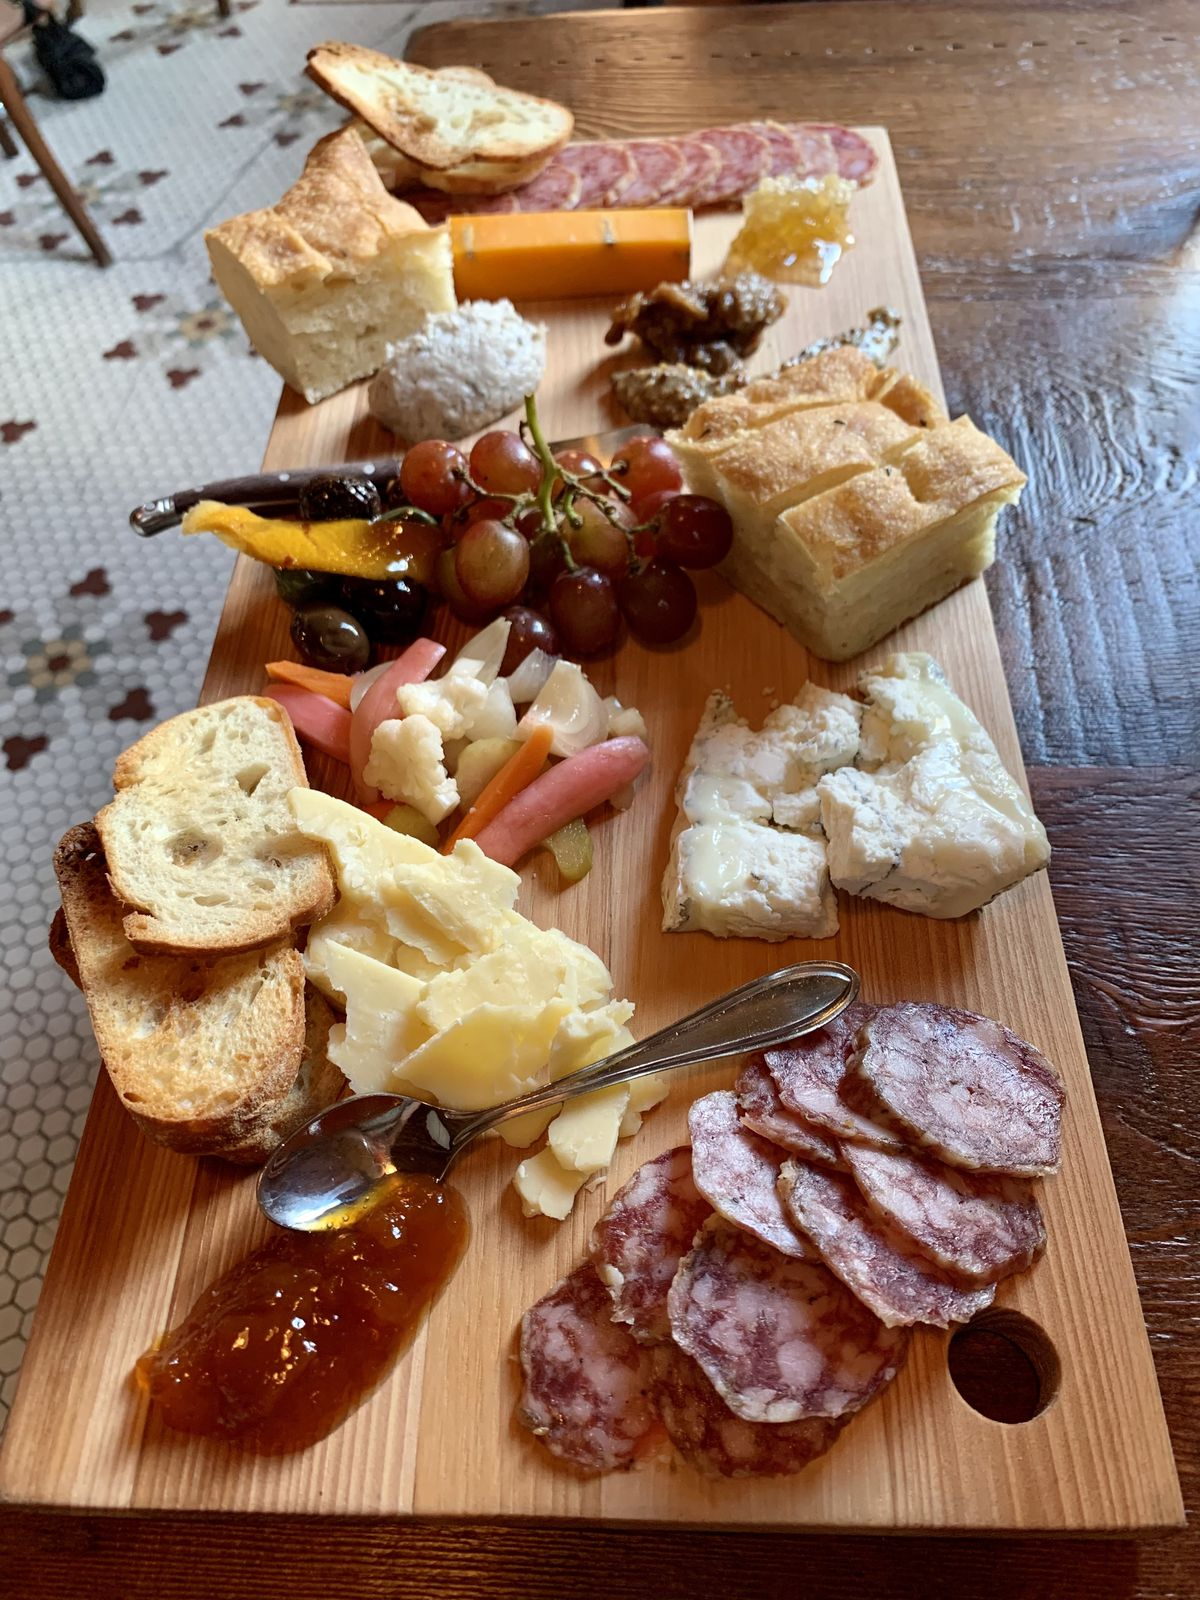 A wooden board filled with sliced meats and cheeses